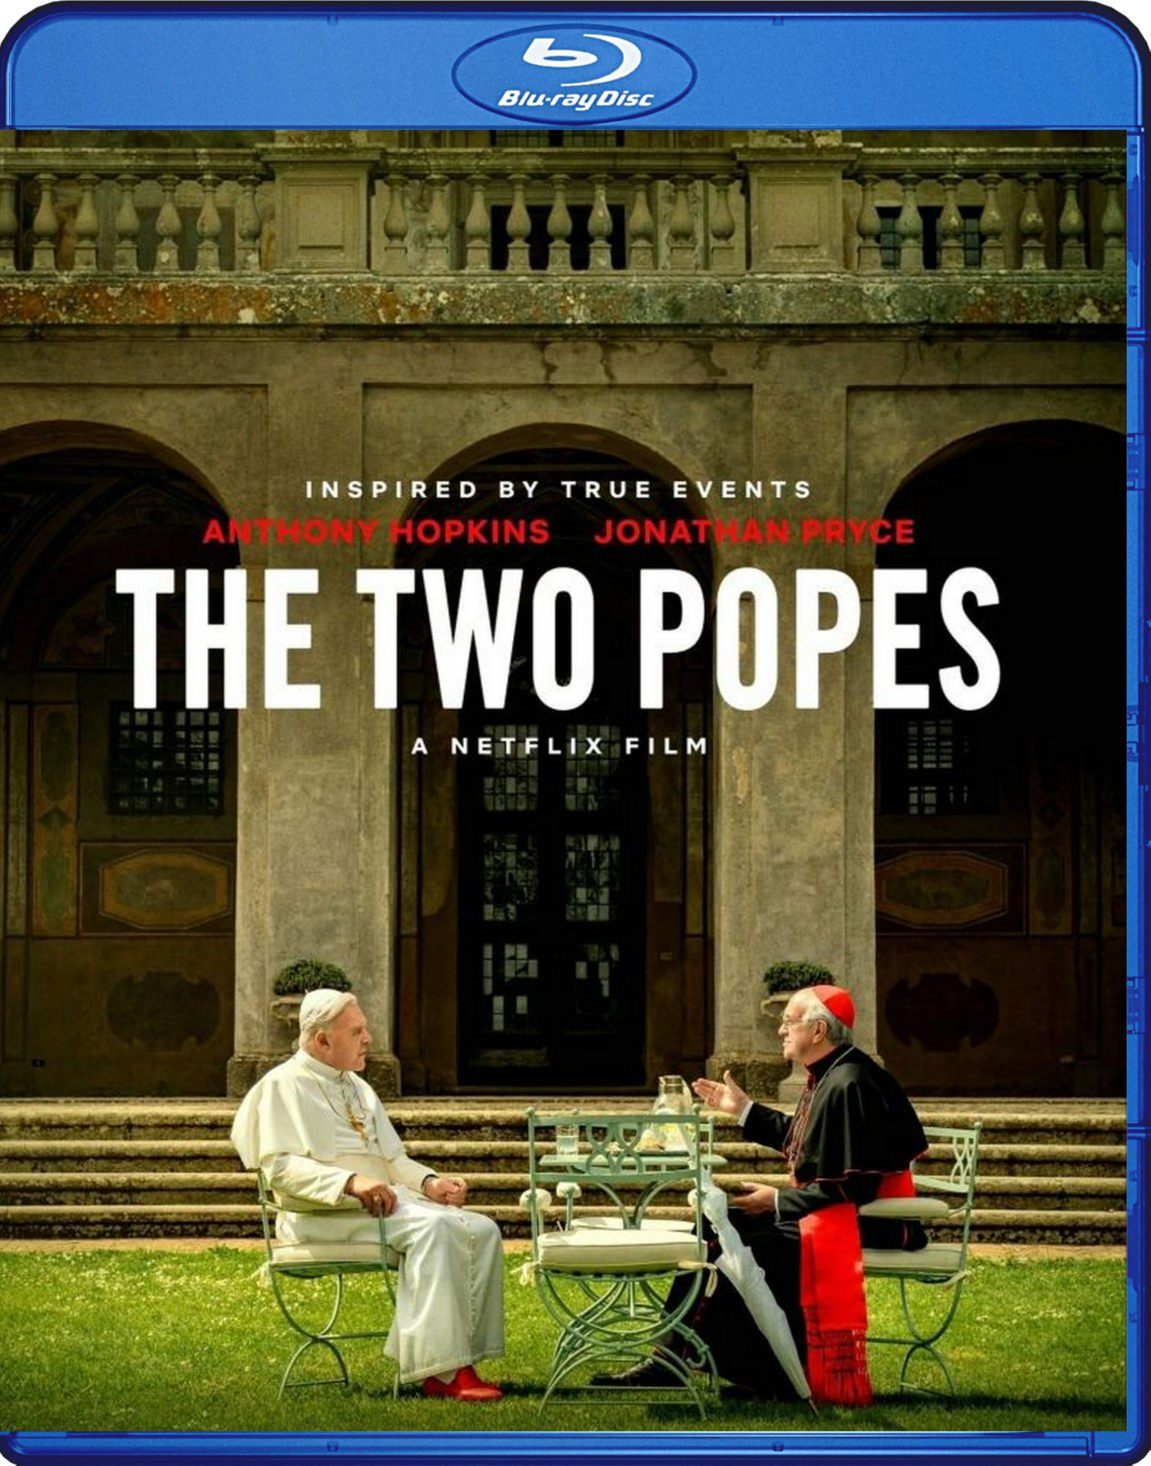 The Two Popes Blu-Ray Netflix